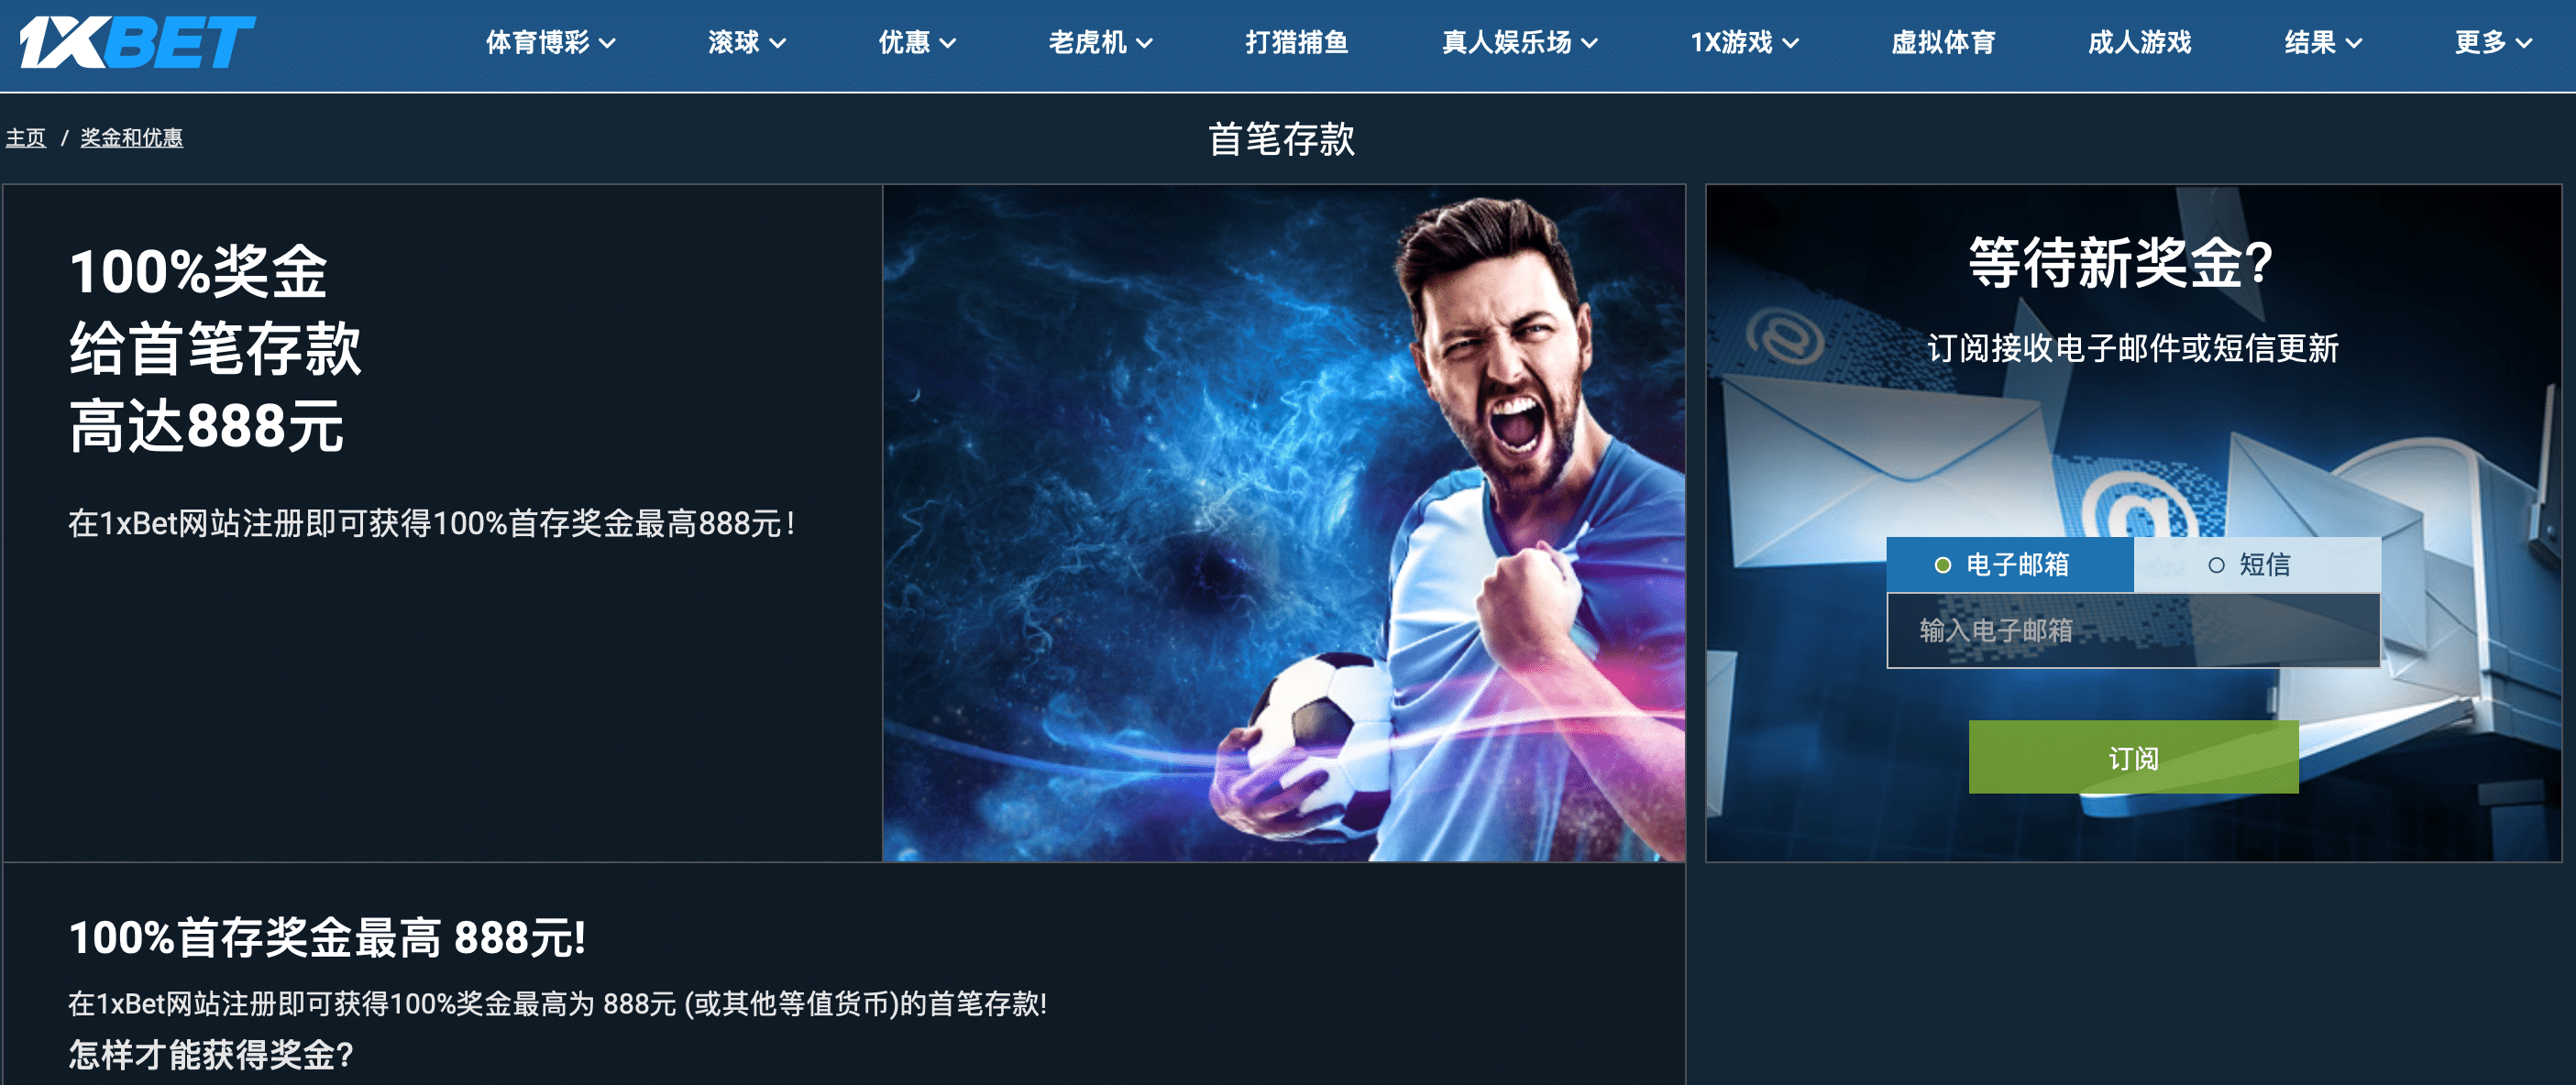 1xbet chinese home page